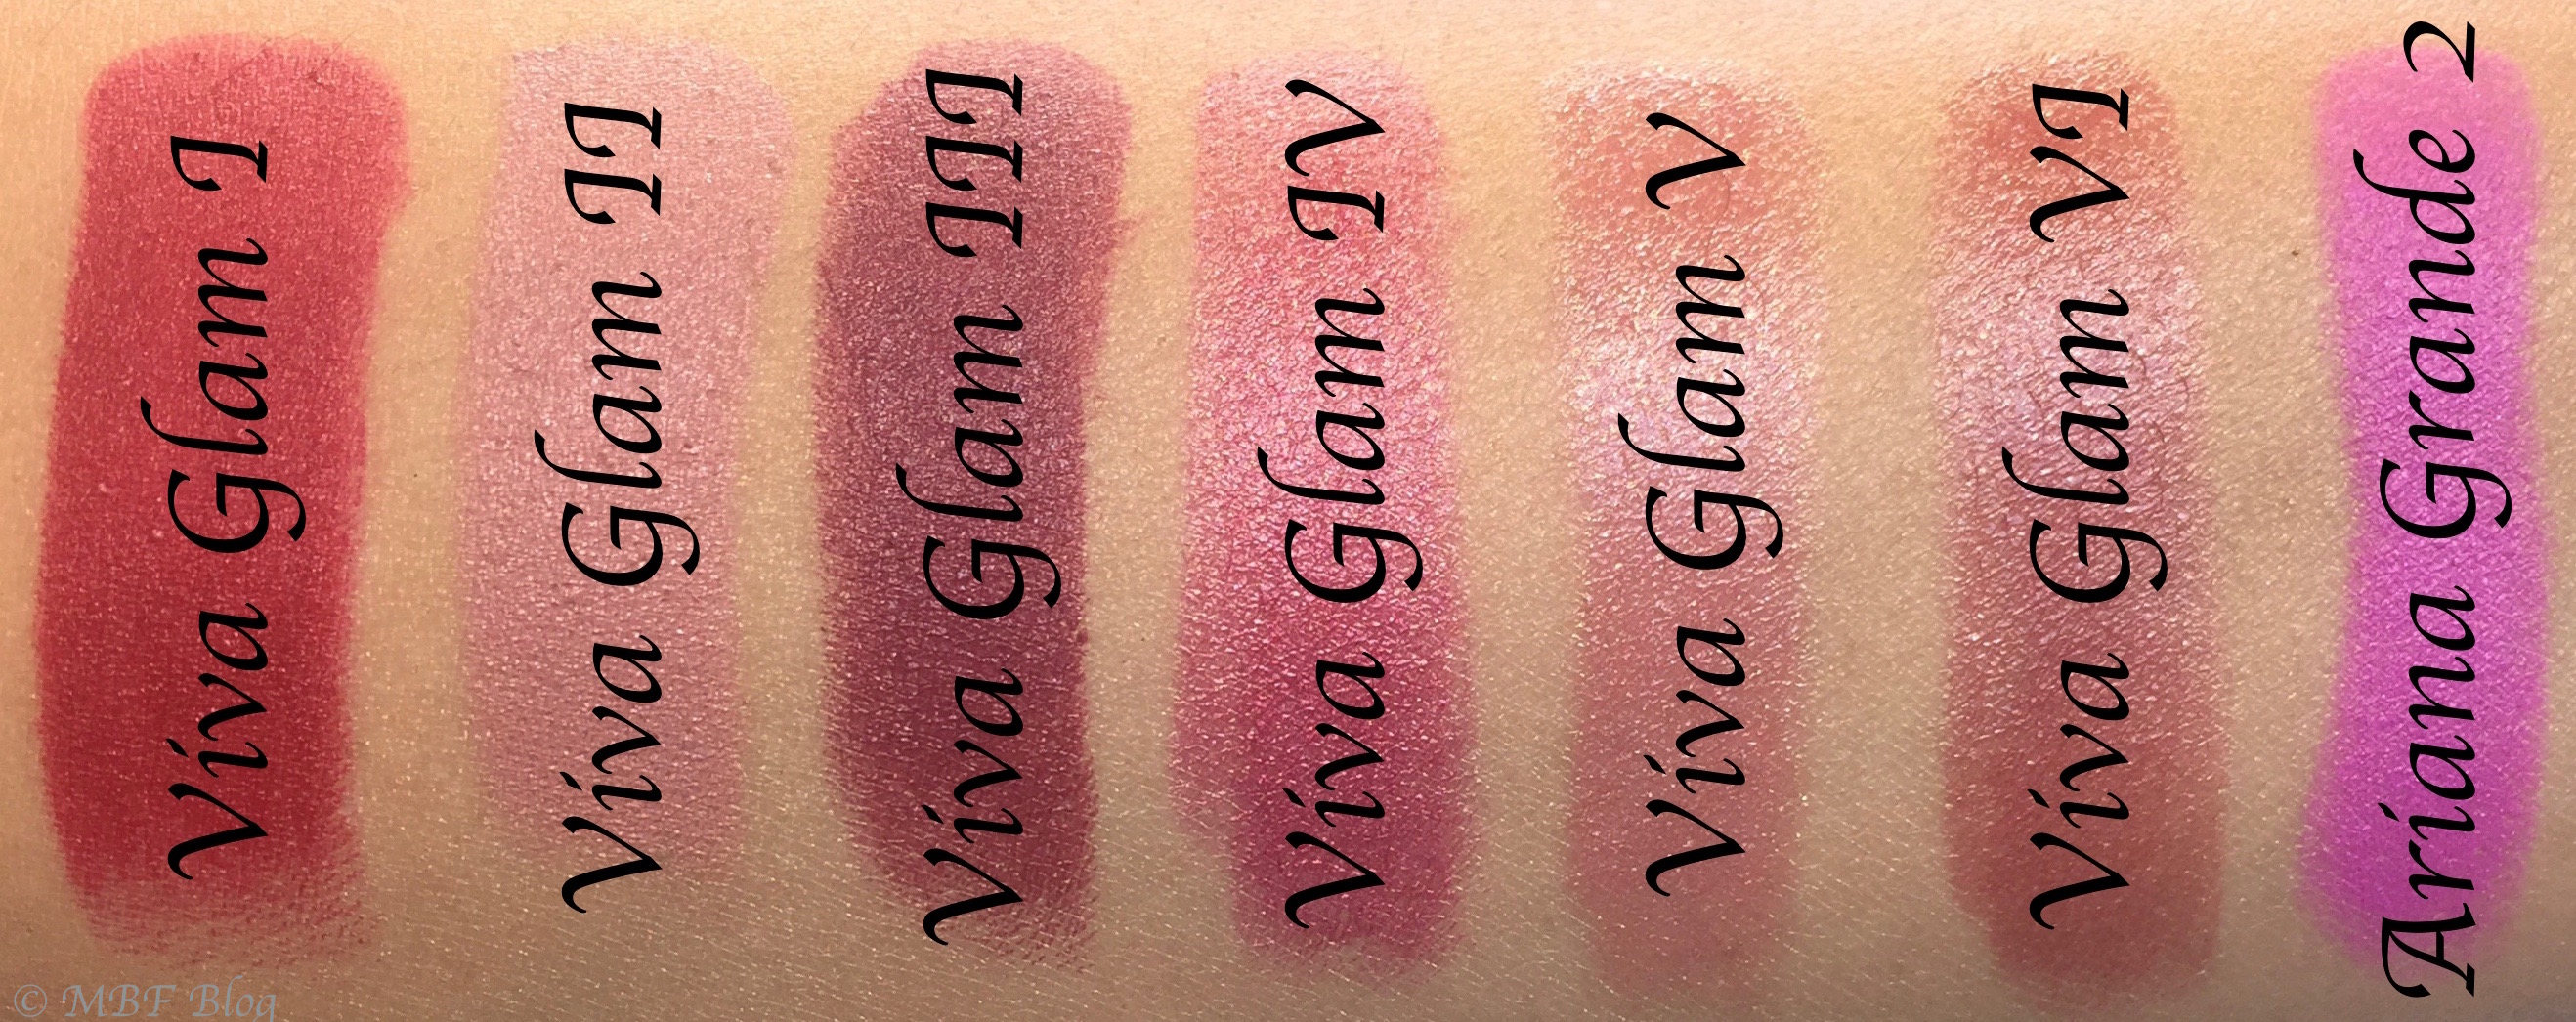 All MAC Viva Glam Lipsticks Shades Review, Swatches Viva ...